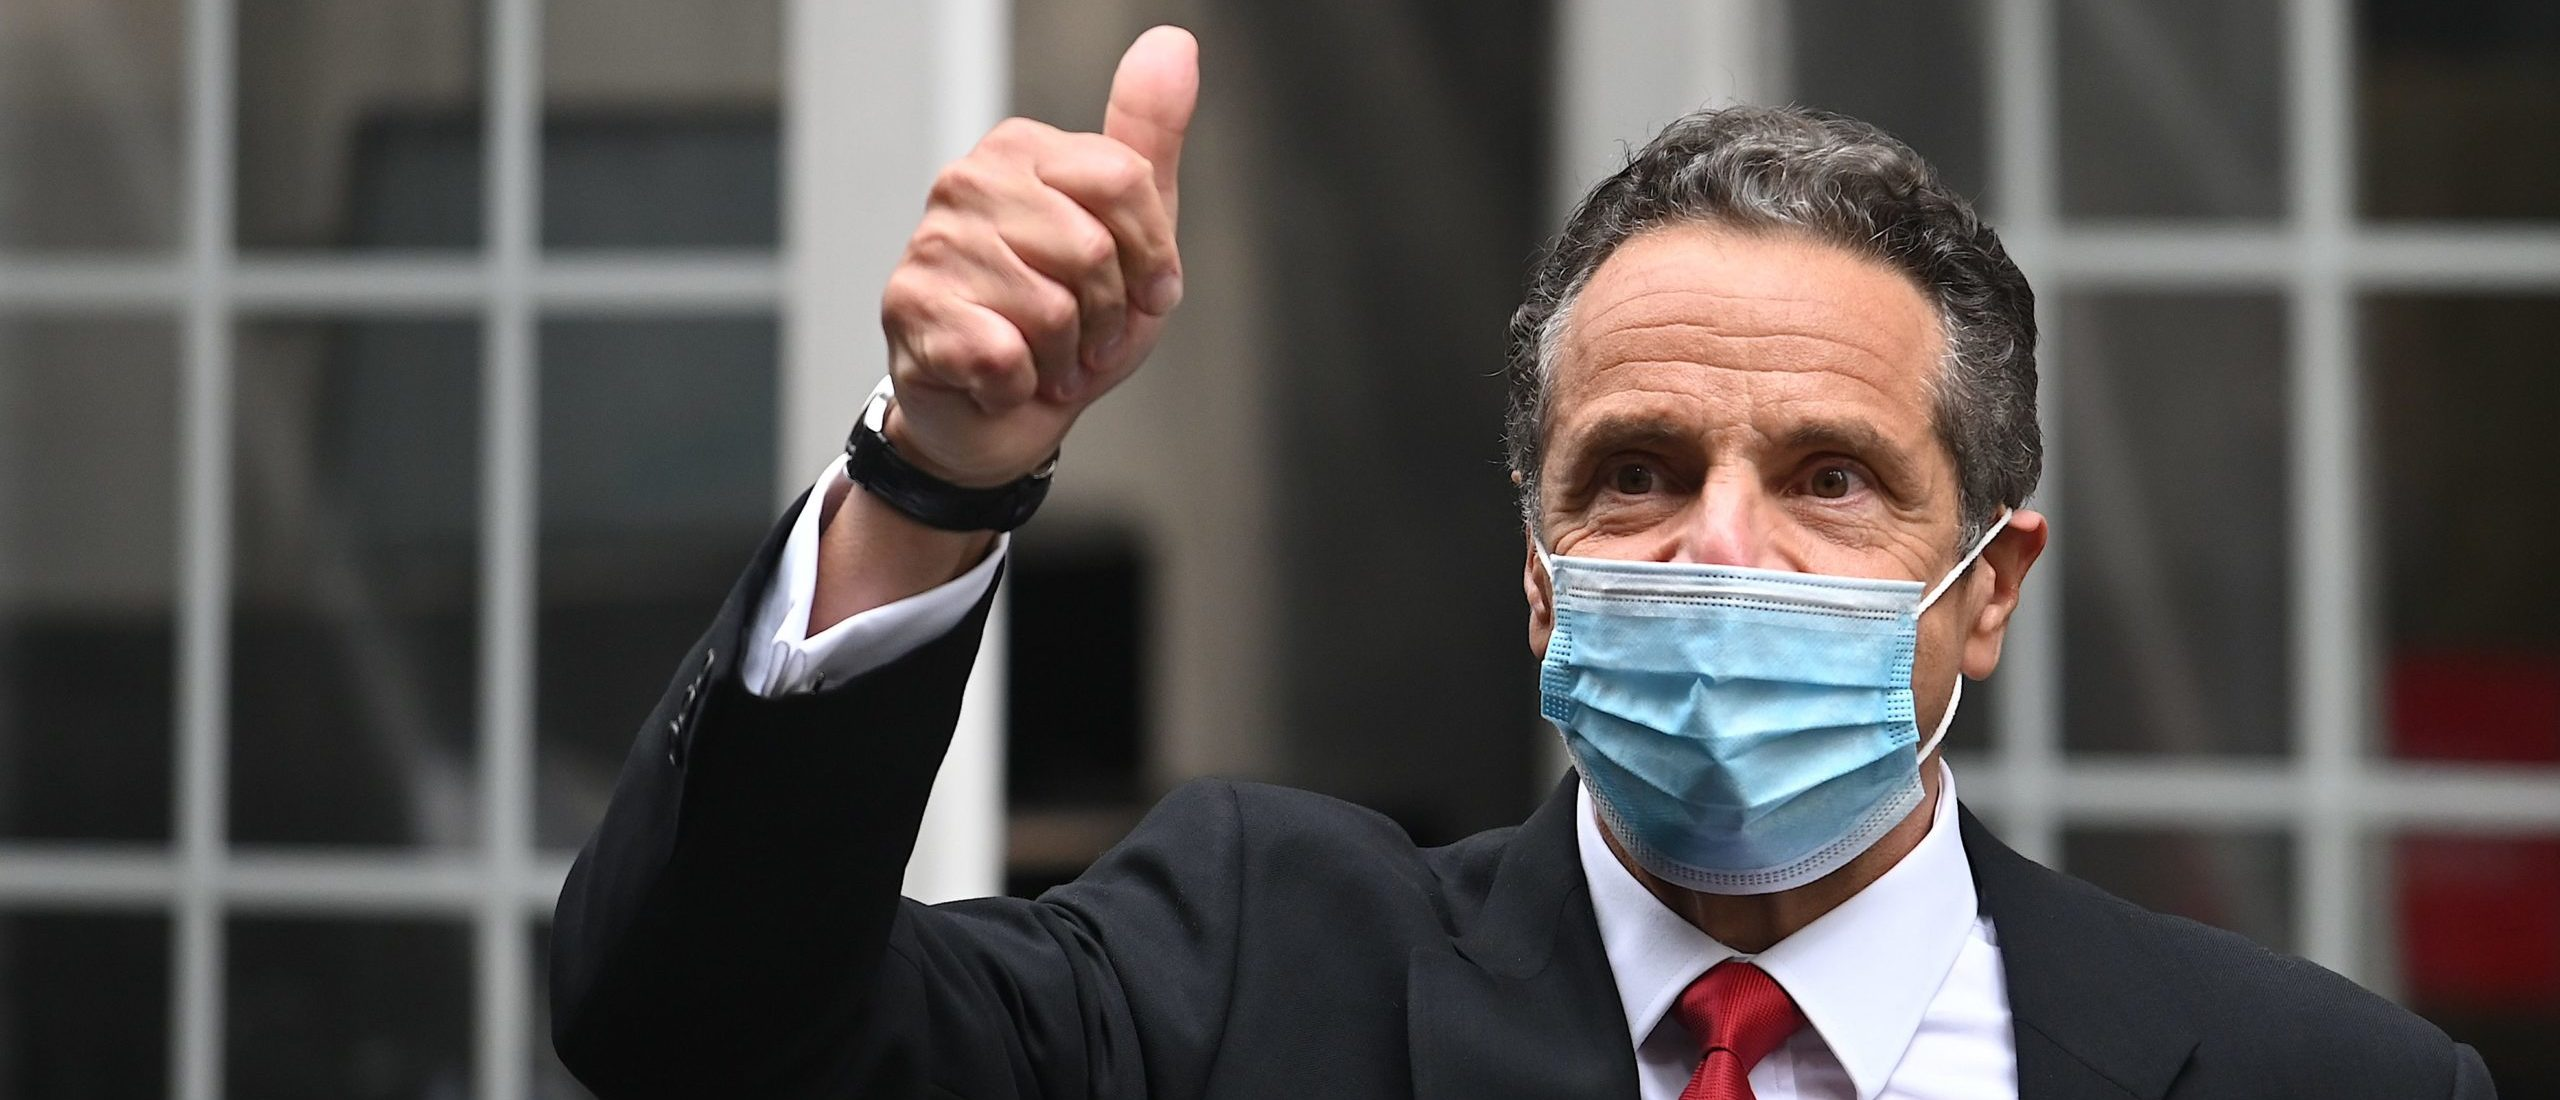 New York Andrew Cuomo Gov. leaves the New York Stock Exchange on May 26. (Johannes Eisele/AFP via Getty Images)